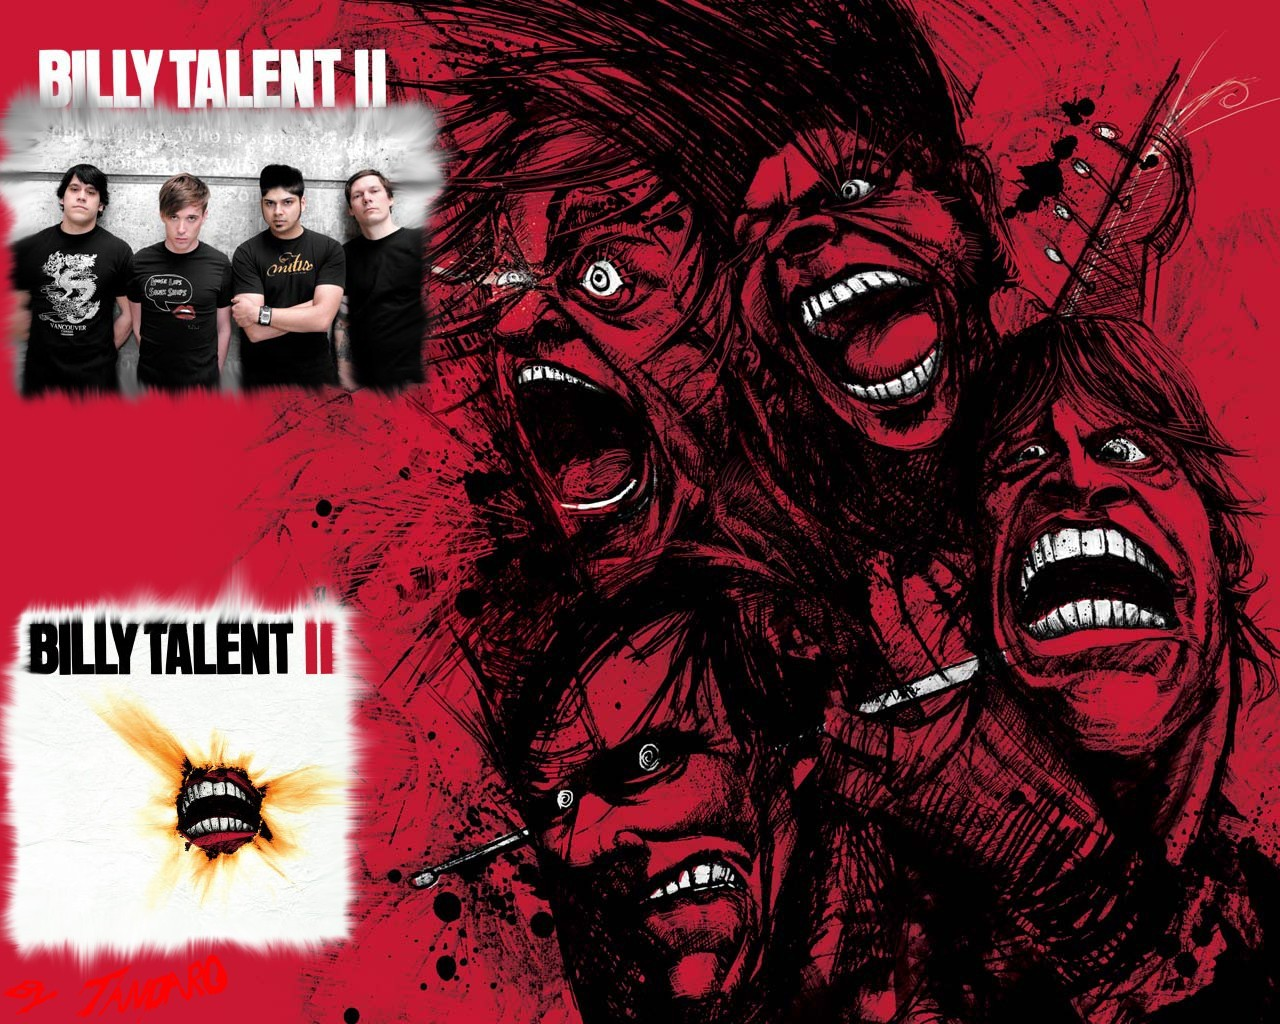 Billy Talent Bandswallpapers Free Wallpapers Music